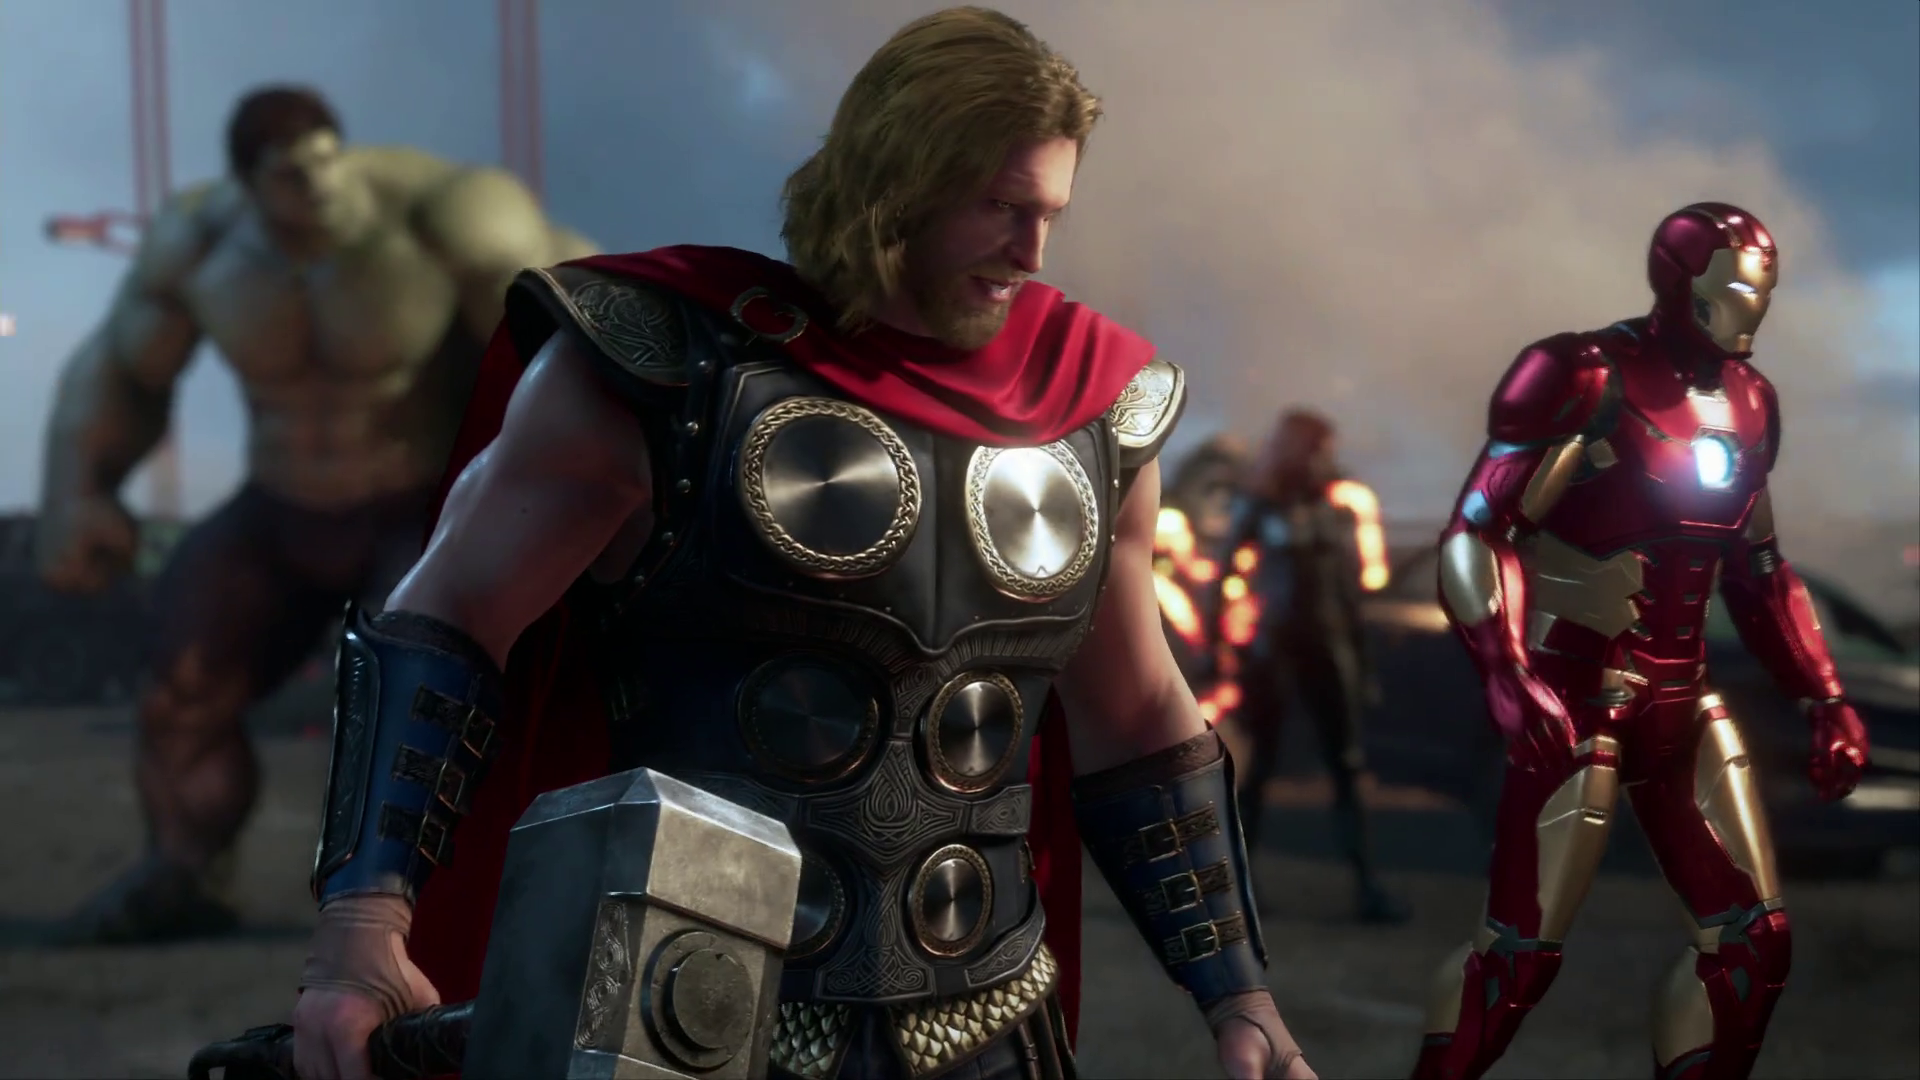 Marvel's Avengers PS5 And Xbox Series X Upgrade Release Delayed To 2021